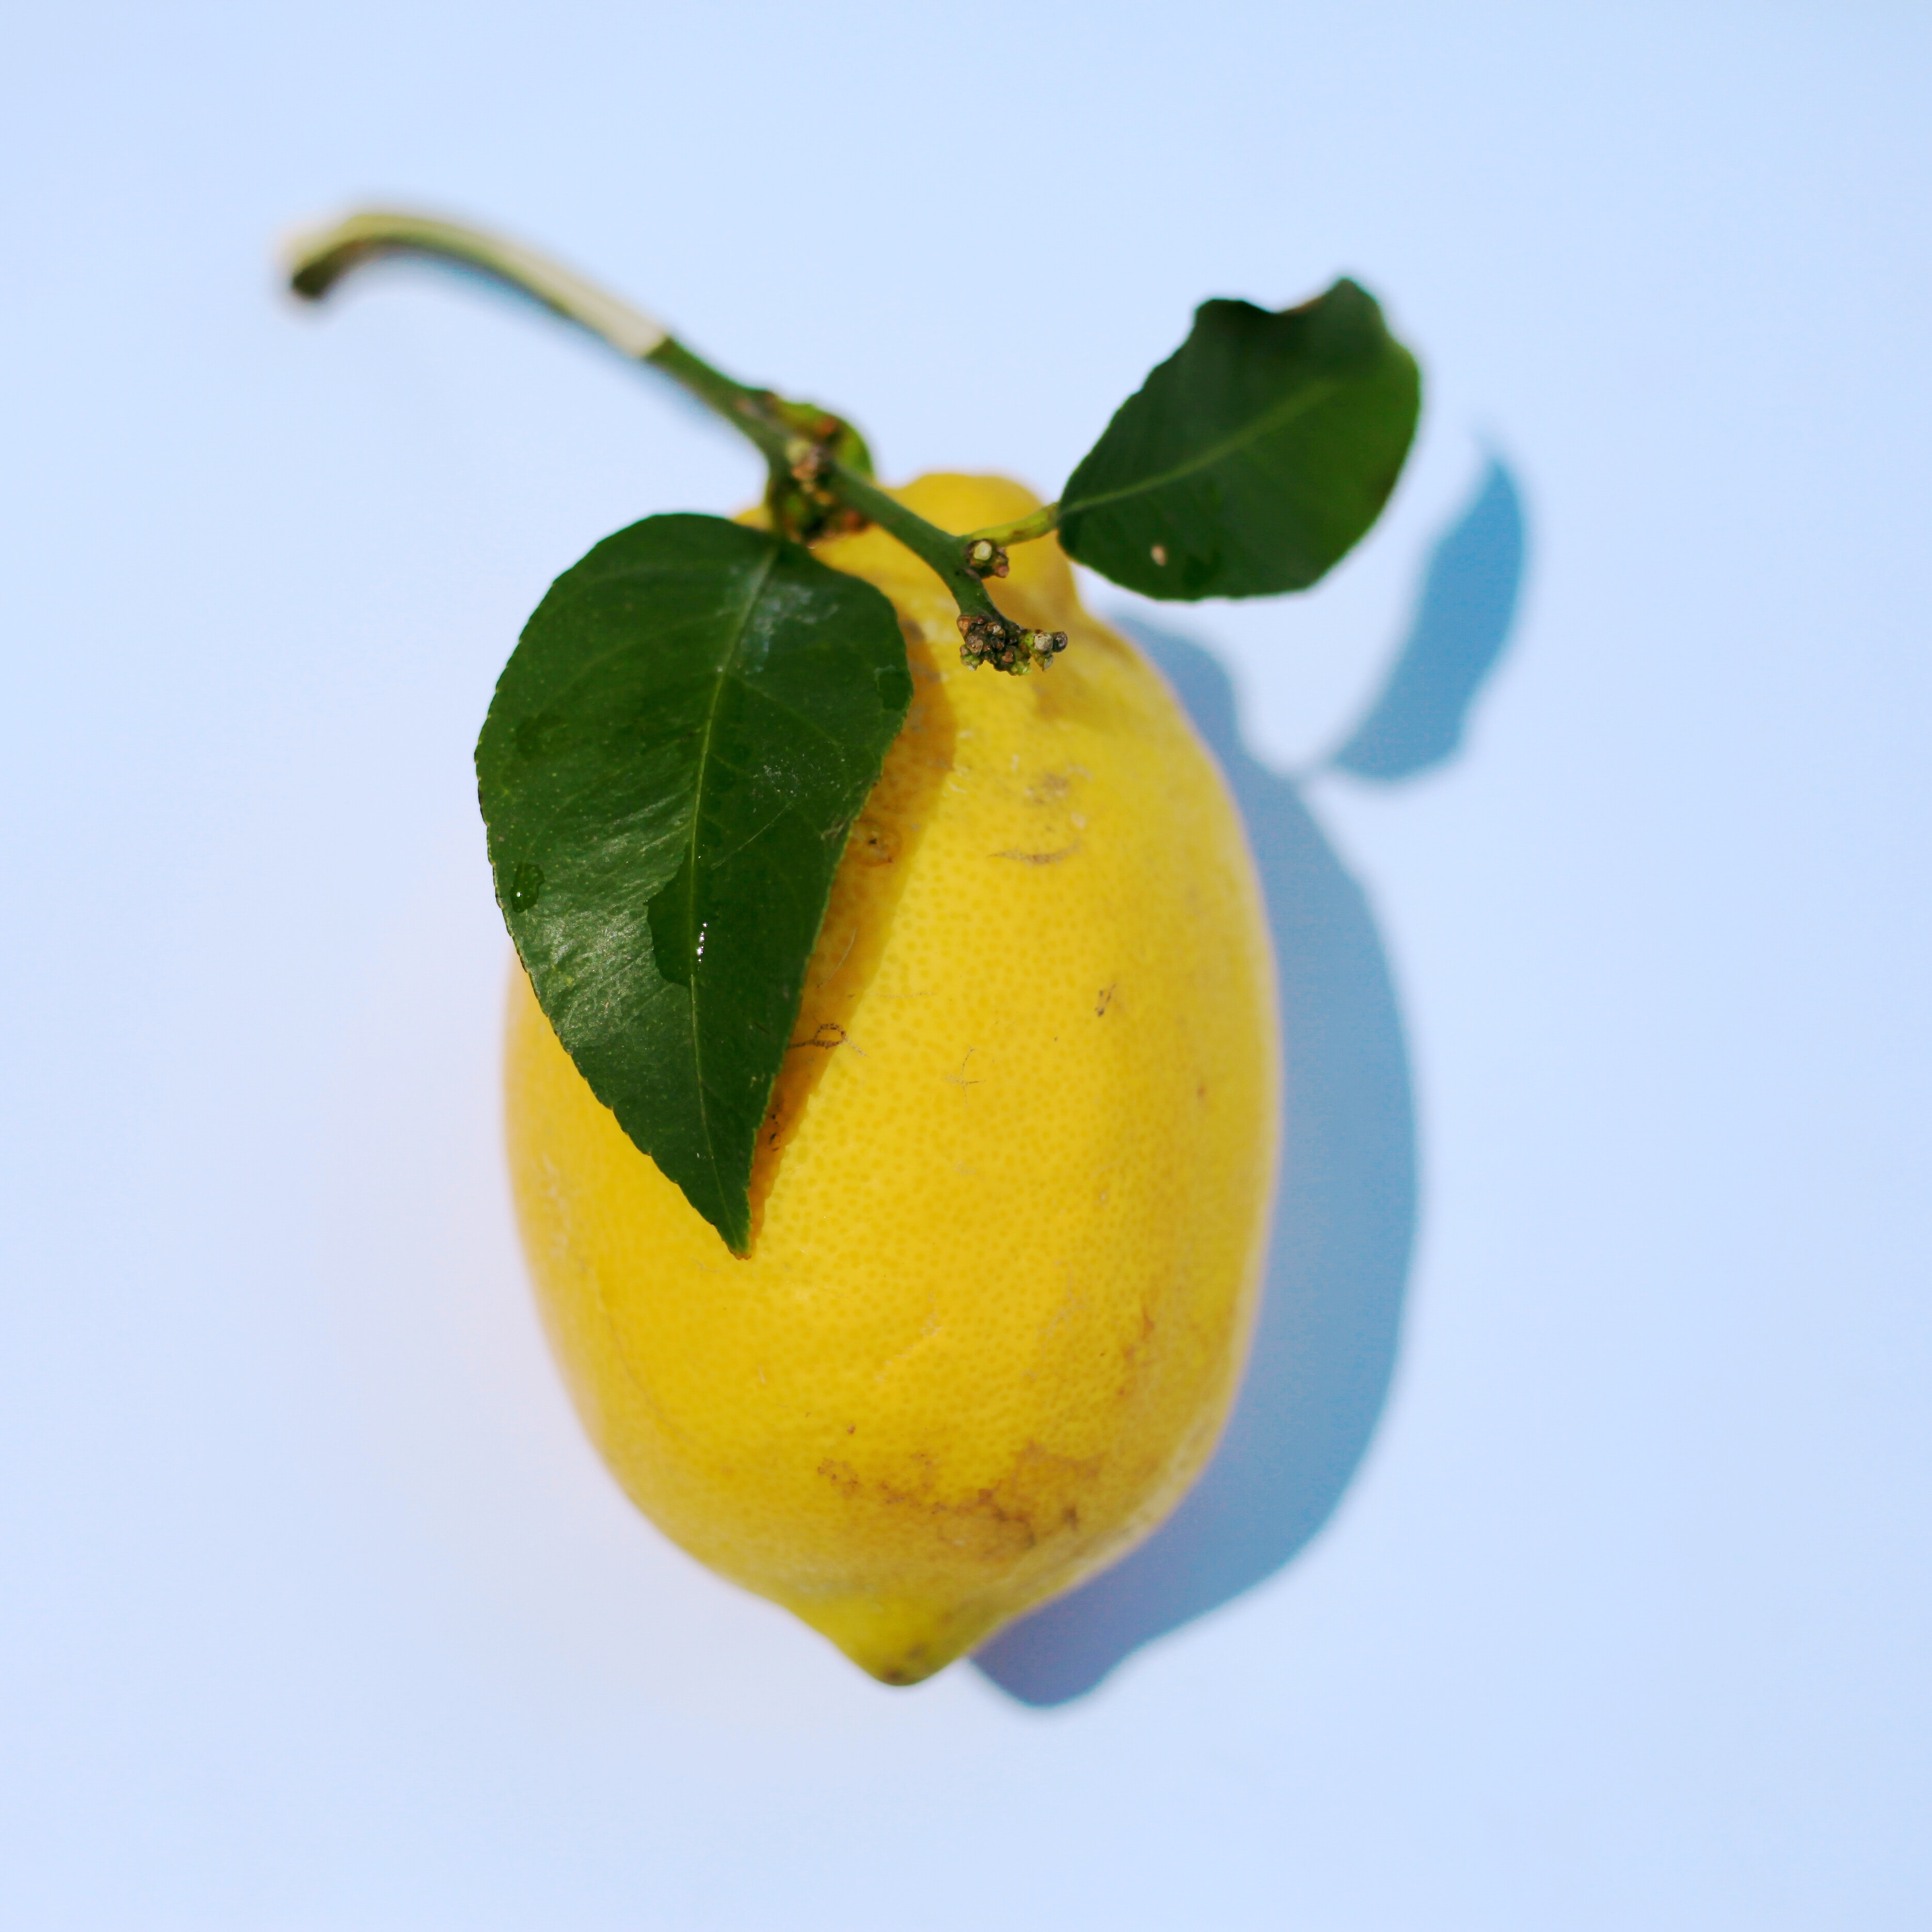 yellow citrus fruit